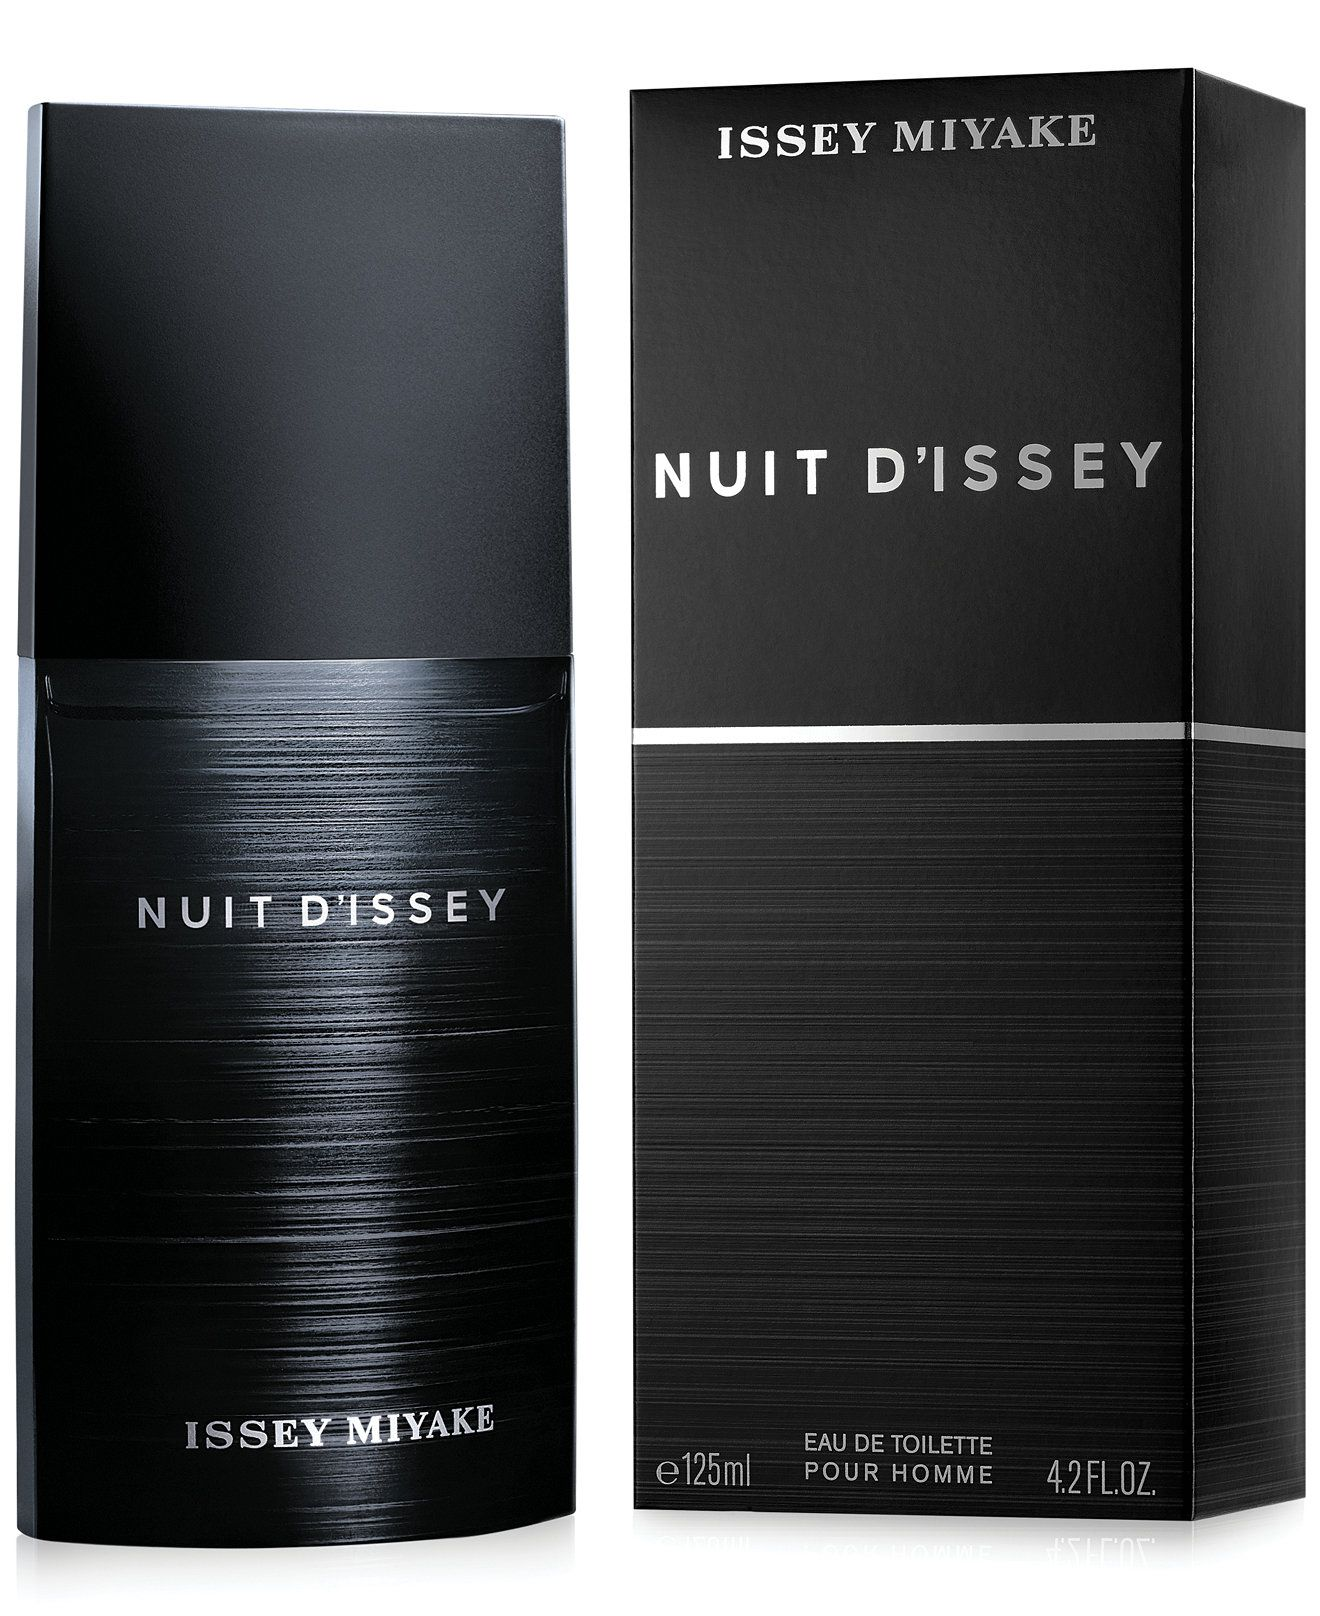 Issey Miyake Nuit D Issey Fragrance Collection Shop All Brands Beauty Macy S Eau De Toilette Issey Miyake Fragrance